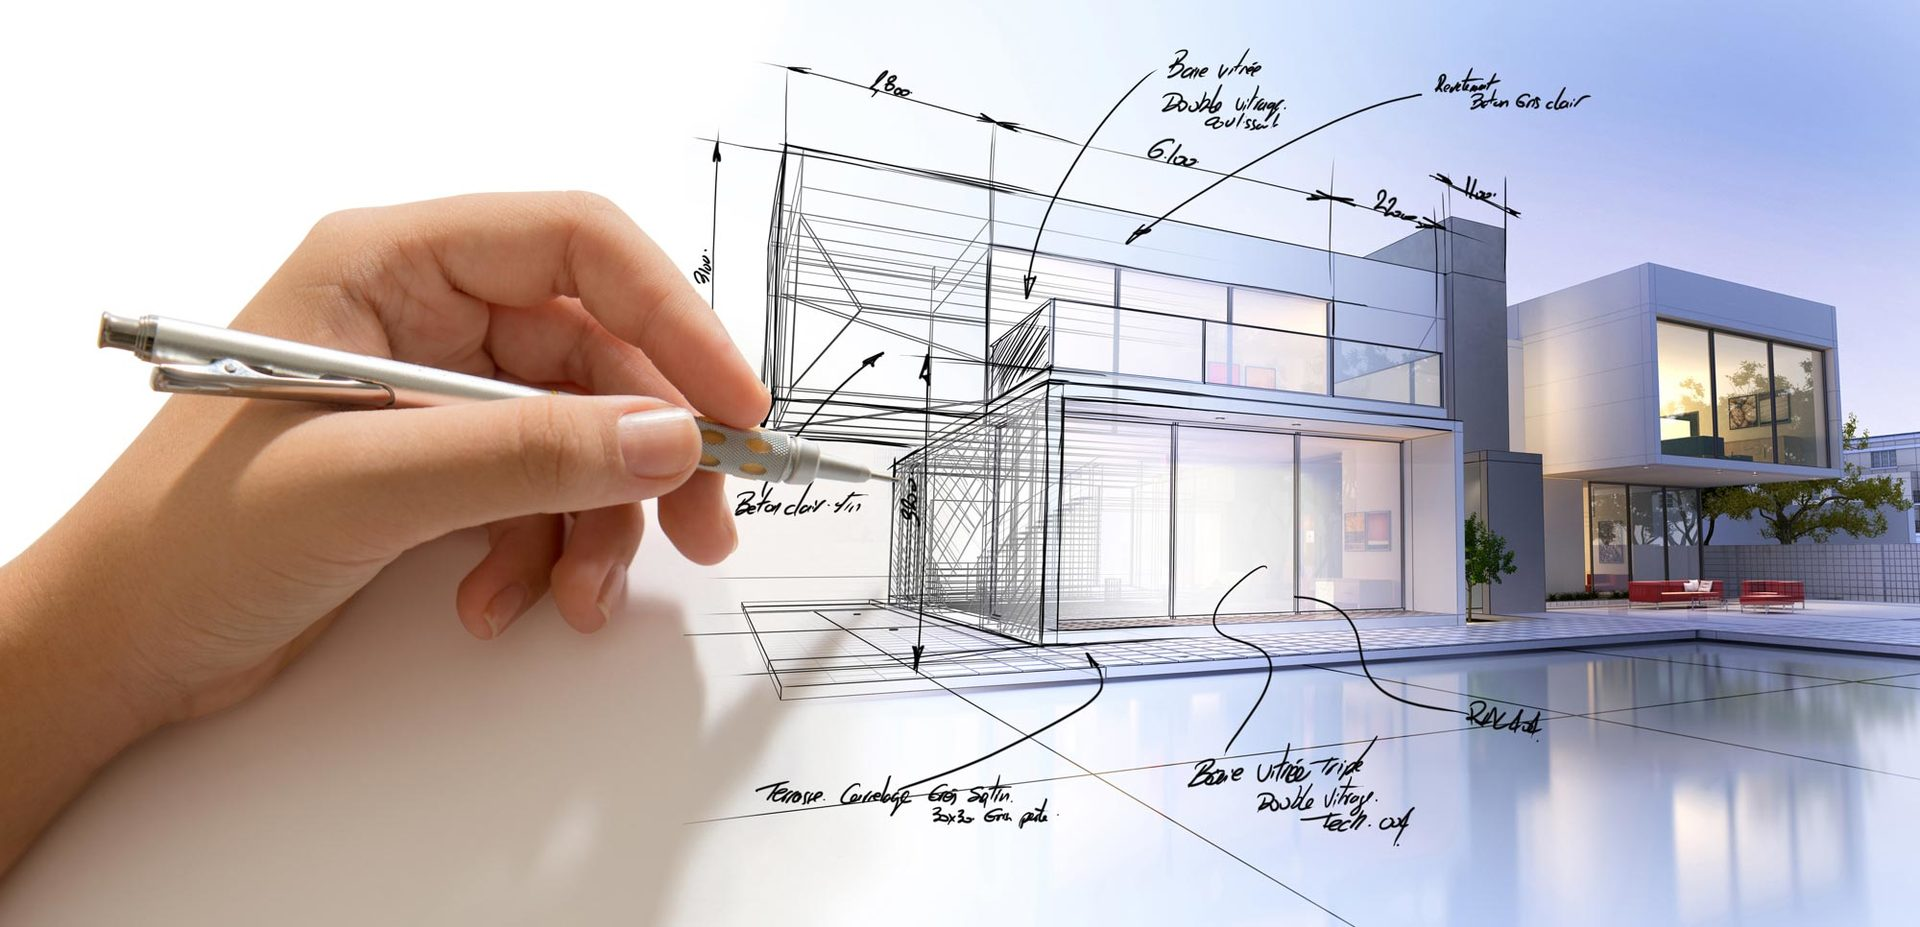 Design permit specialists in gippsland adi building services every building starts on paper malvernweather Choice Image